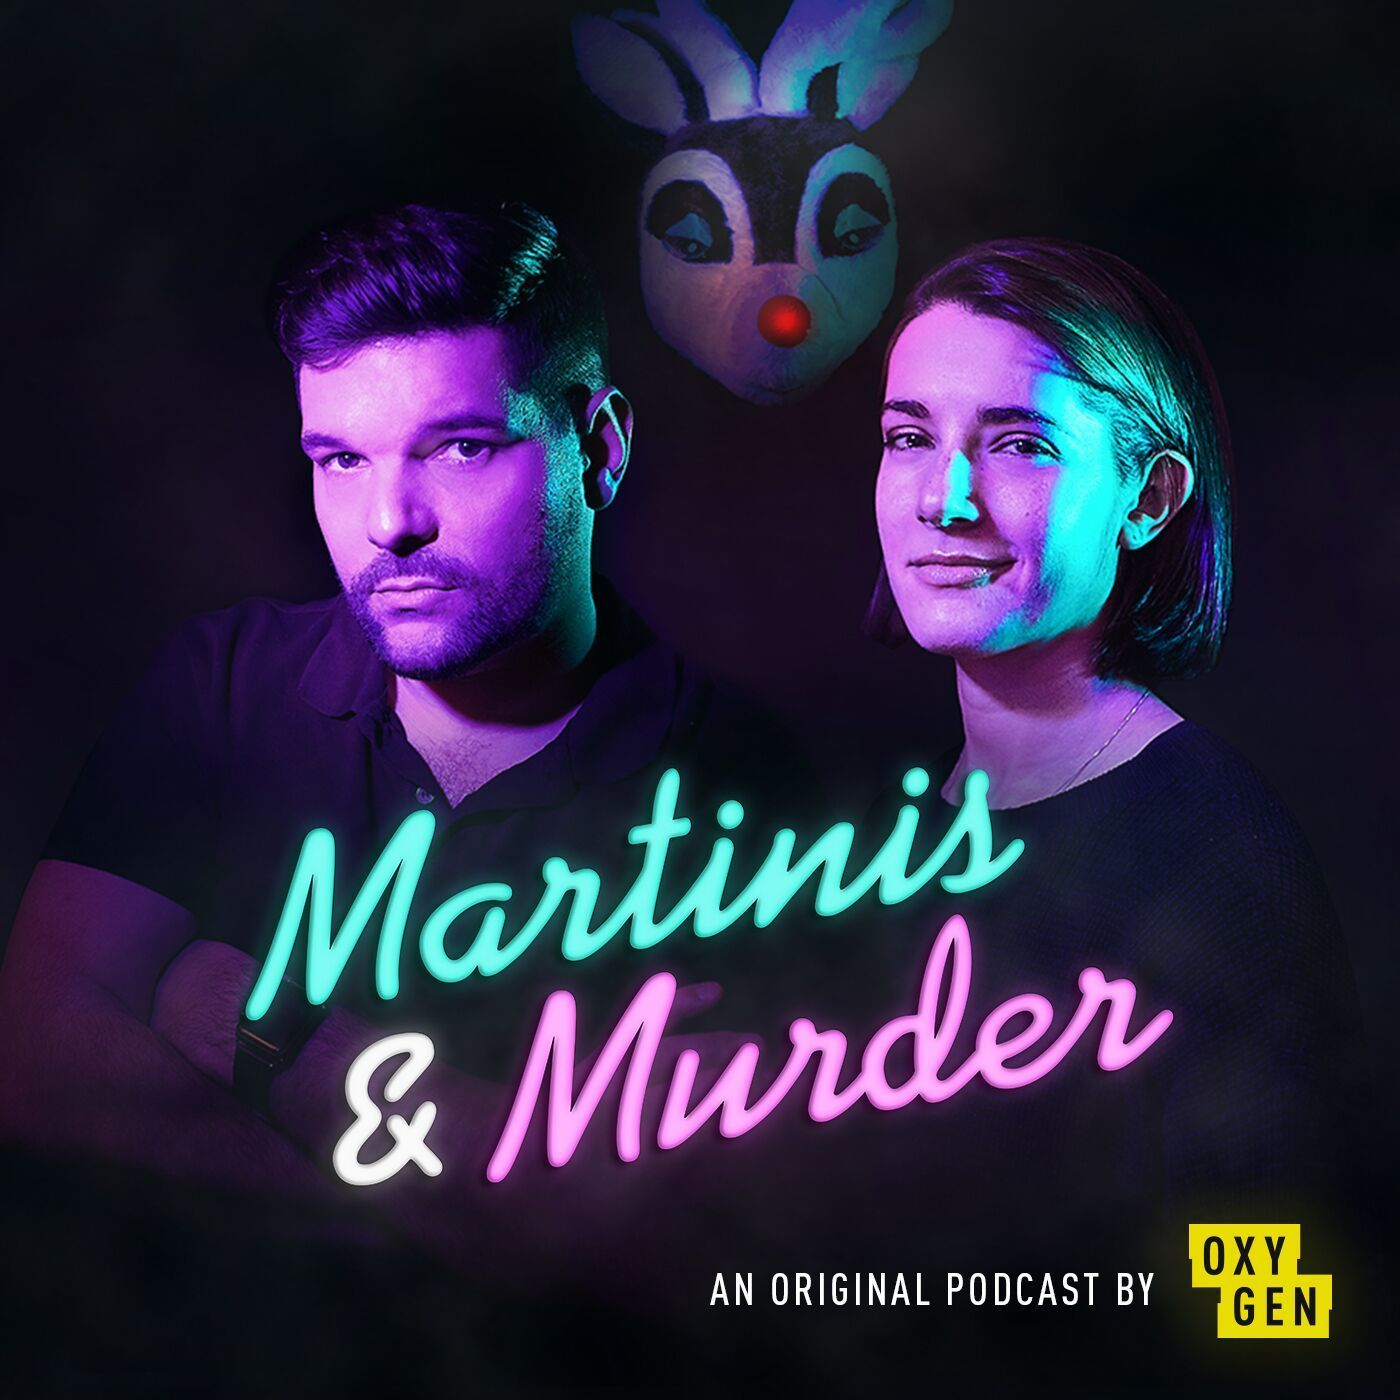 Episode #159 - Medical Murder